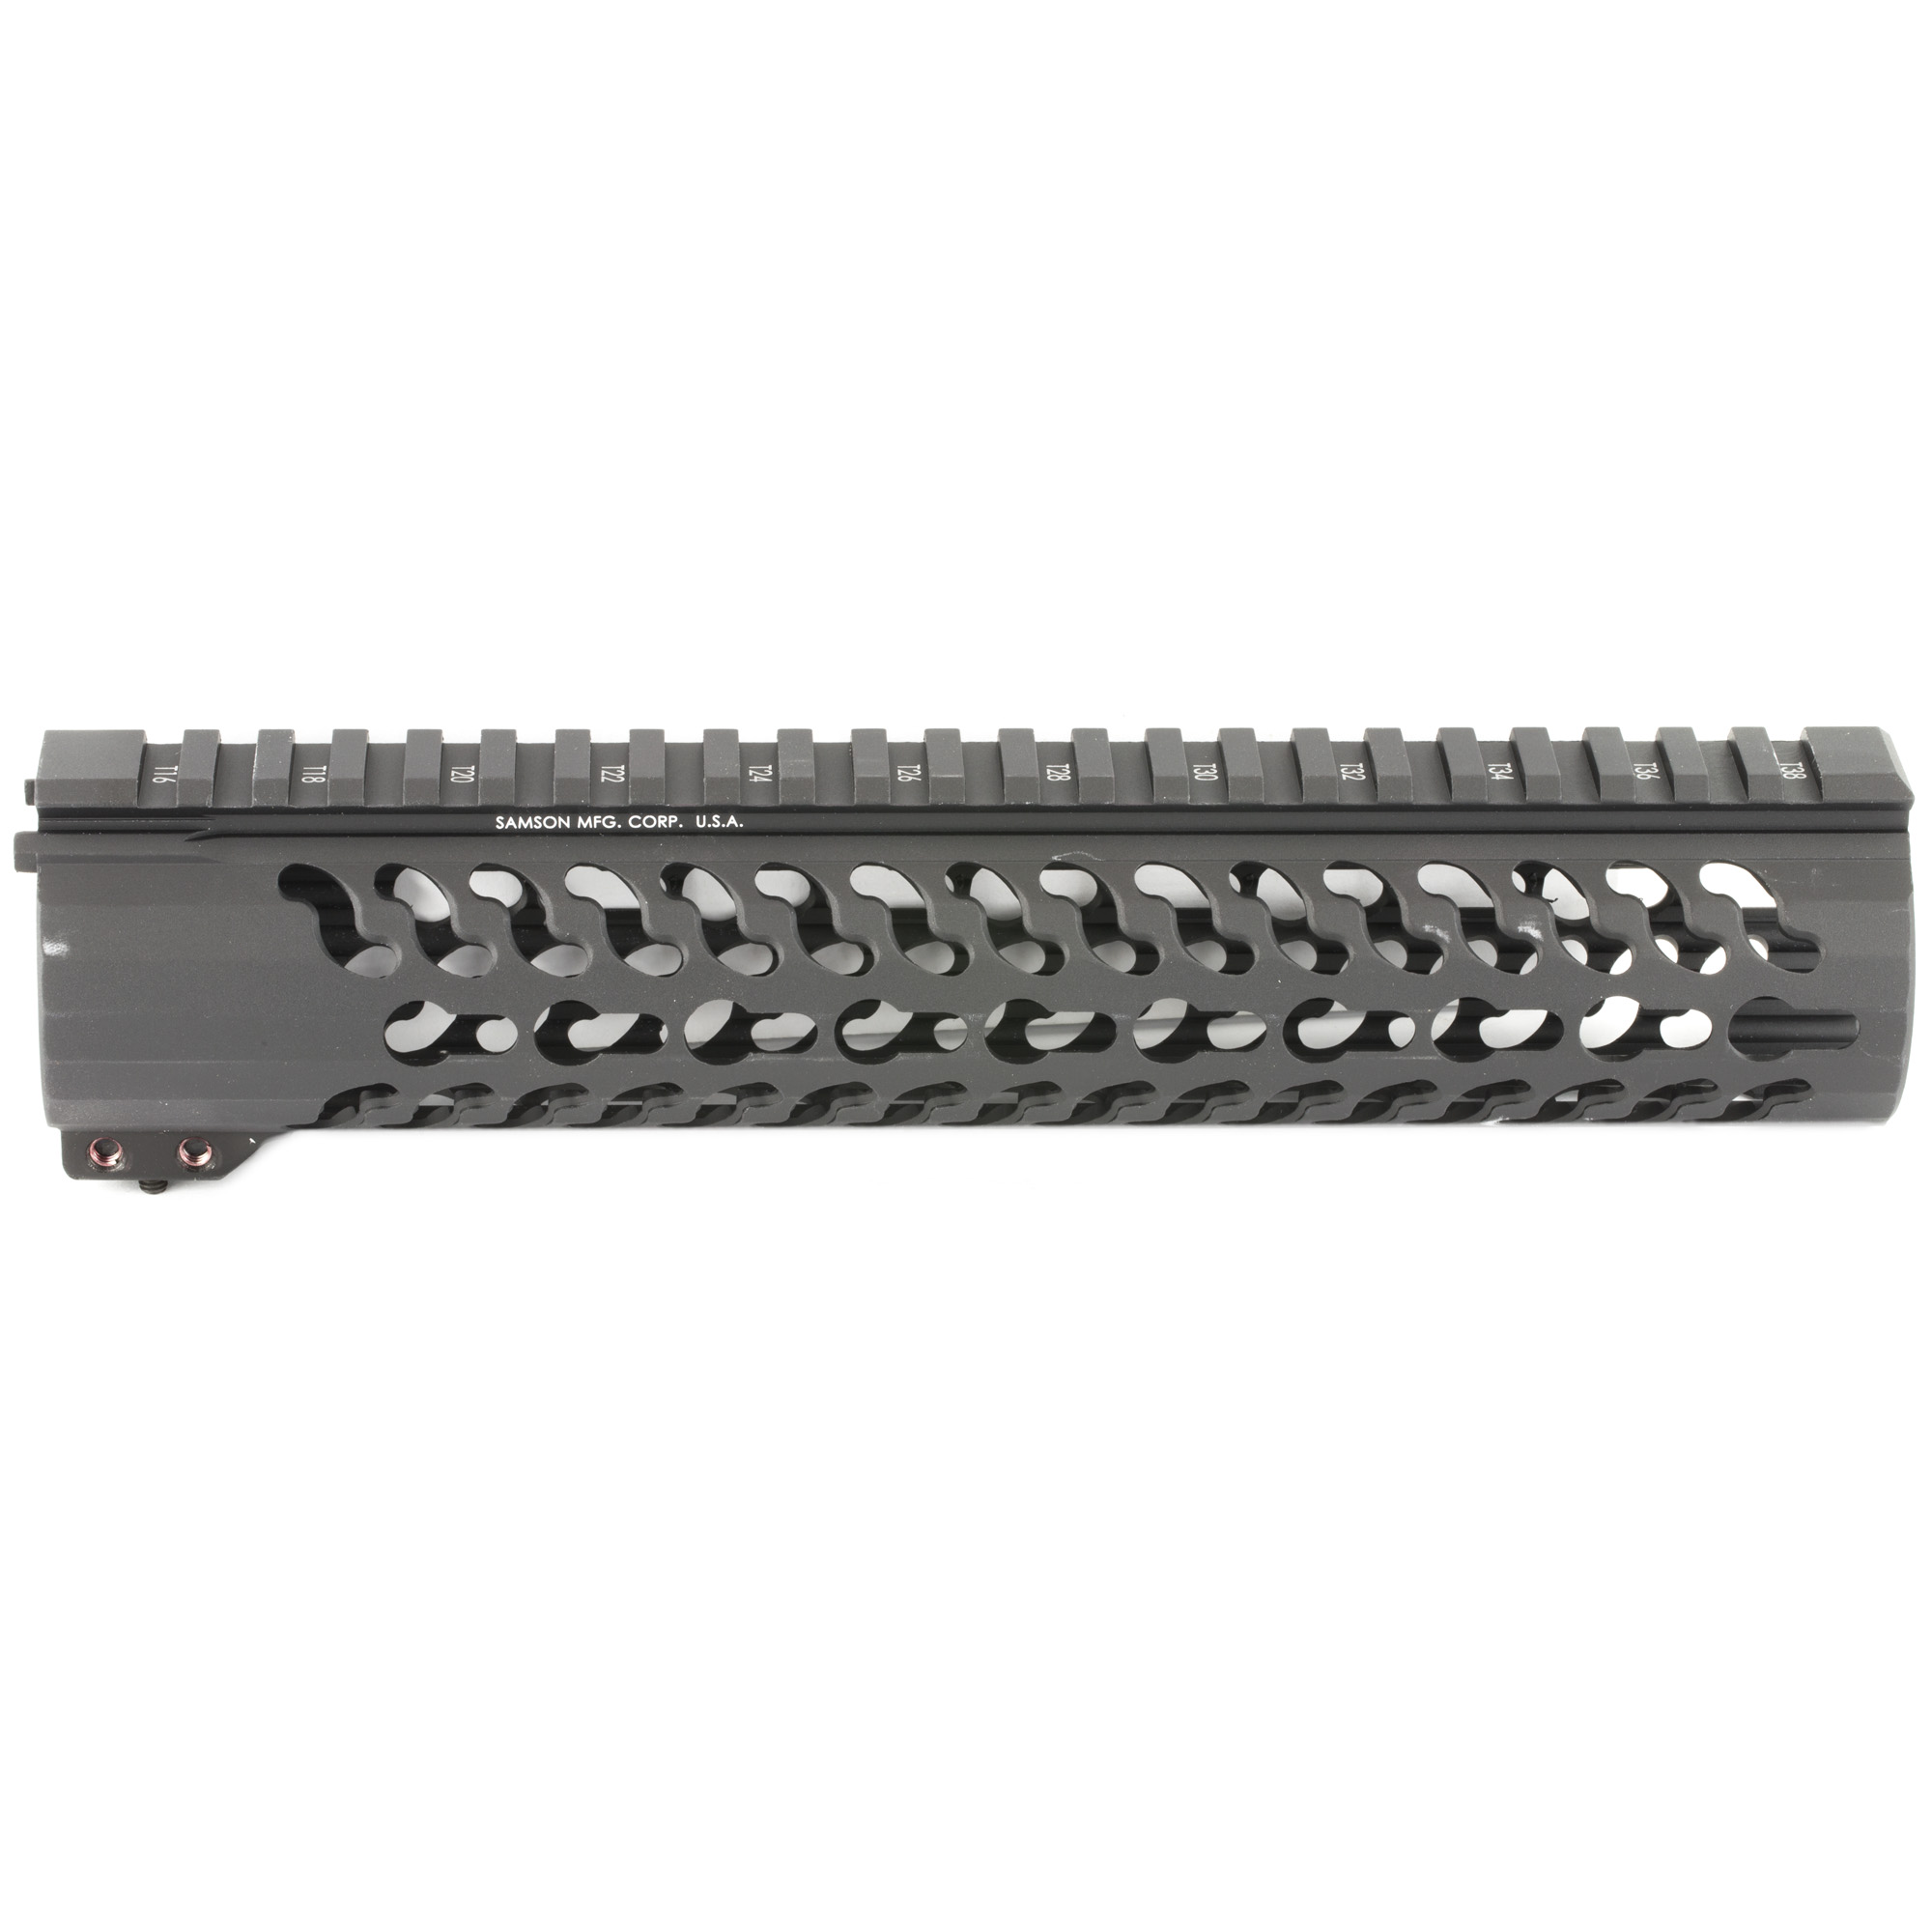 """The Samson Evolution Series features a free-floating AR-15 rail system. Being lightweight and durable allows the Samson Evolution Series to offer the perfect upgrade for 3-Gun competition shooting"""" law enforcement and military personnel or weekend enthusiasts. Accessory picatinny rails can be added or removed at any of 7 positions around the rail and any place along the length of the tube. Rail accommodates most piston systems. KeyMod versions of the Evolution Series do not include accessory rails. This is the 10"""" Mid Length Super Slim Keymod Evolution Rail."""